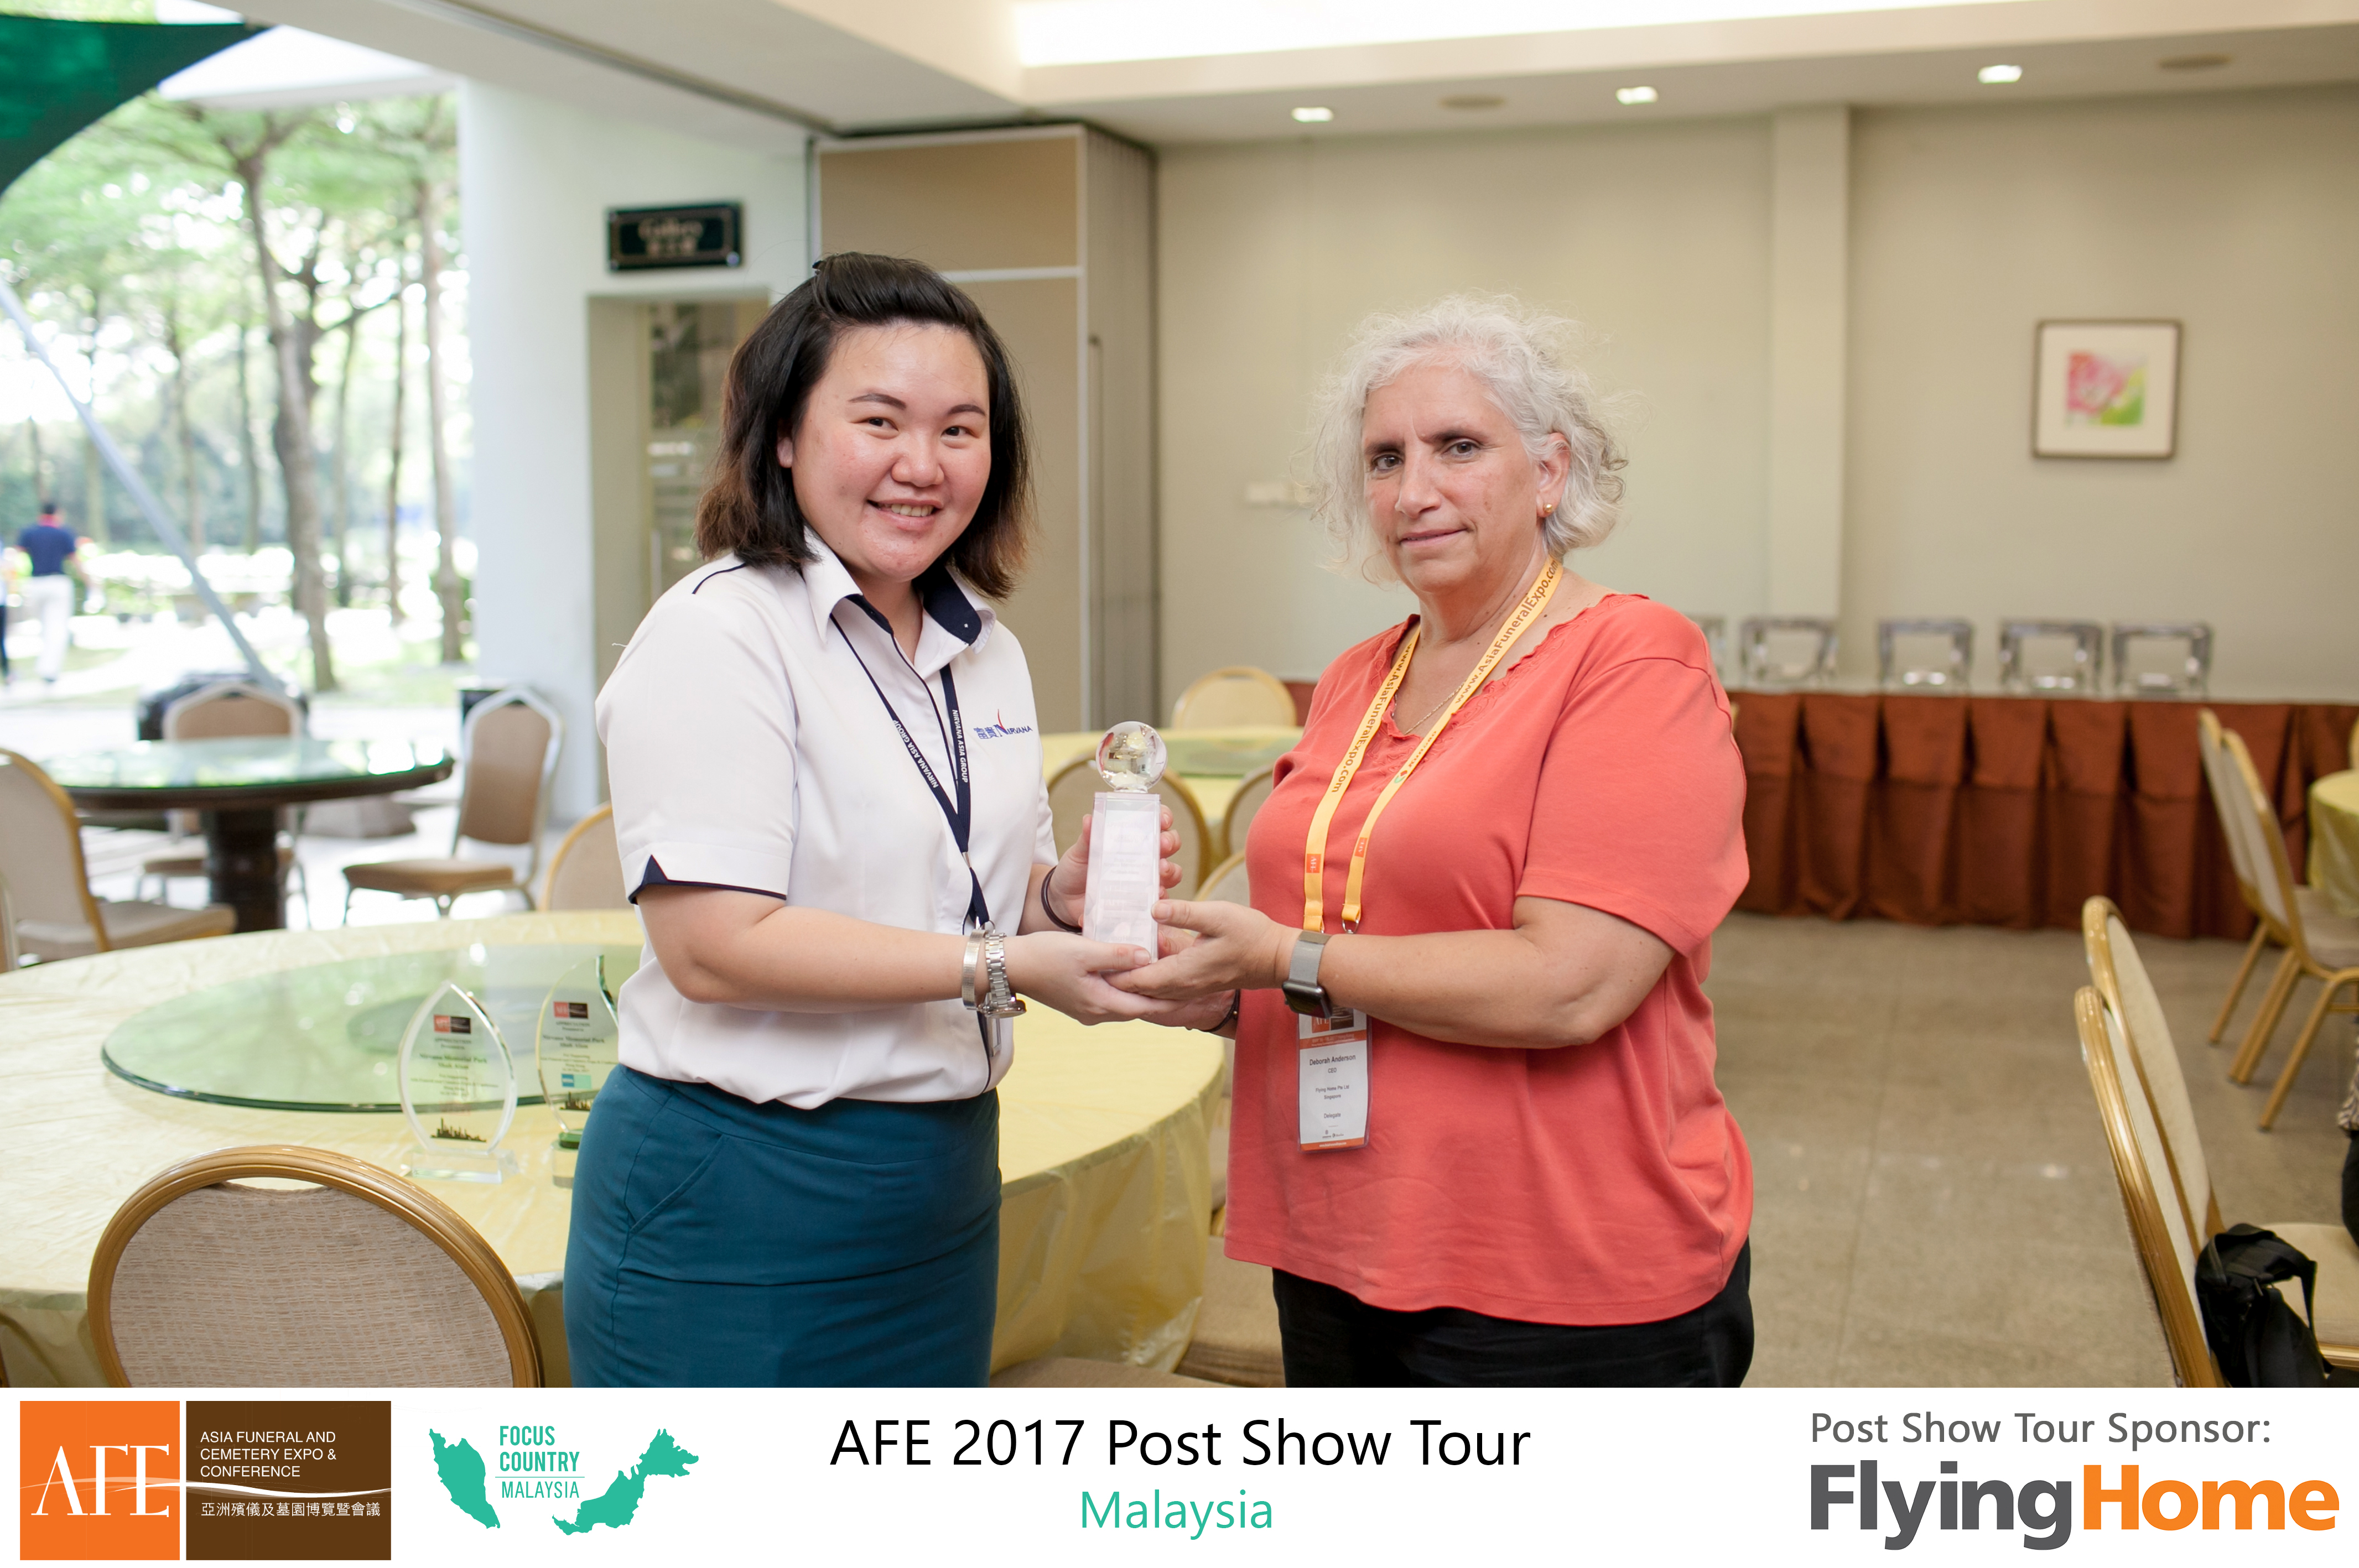 AFE Post Show Tour 2017 Day 2 - 83